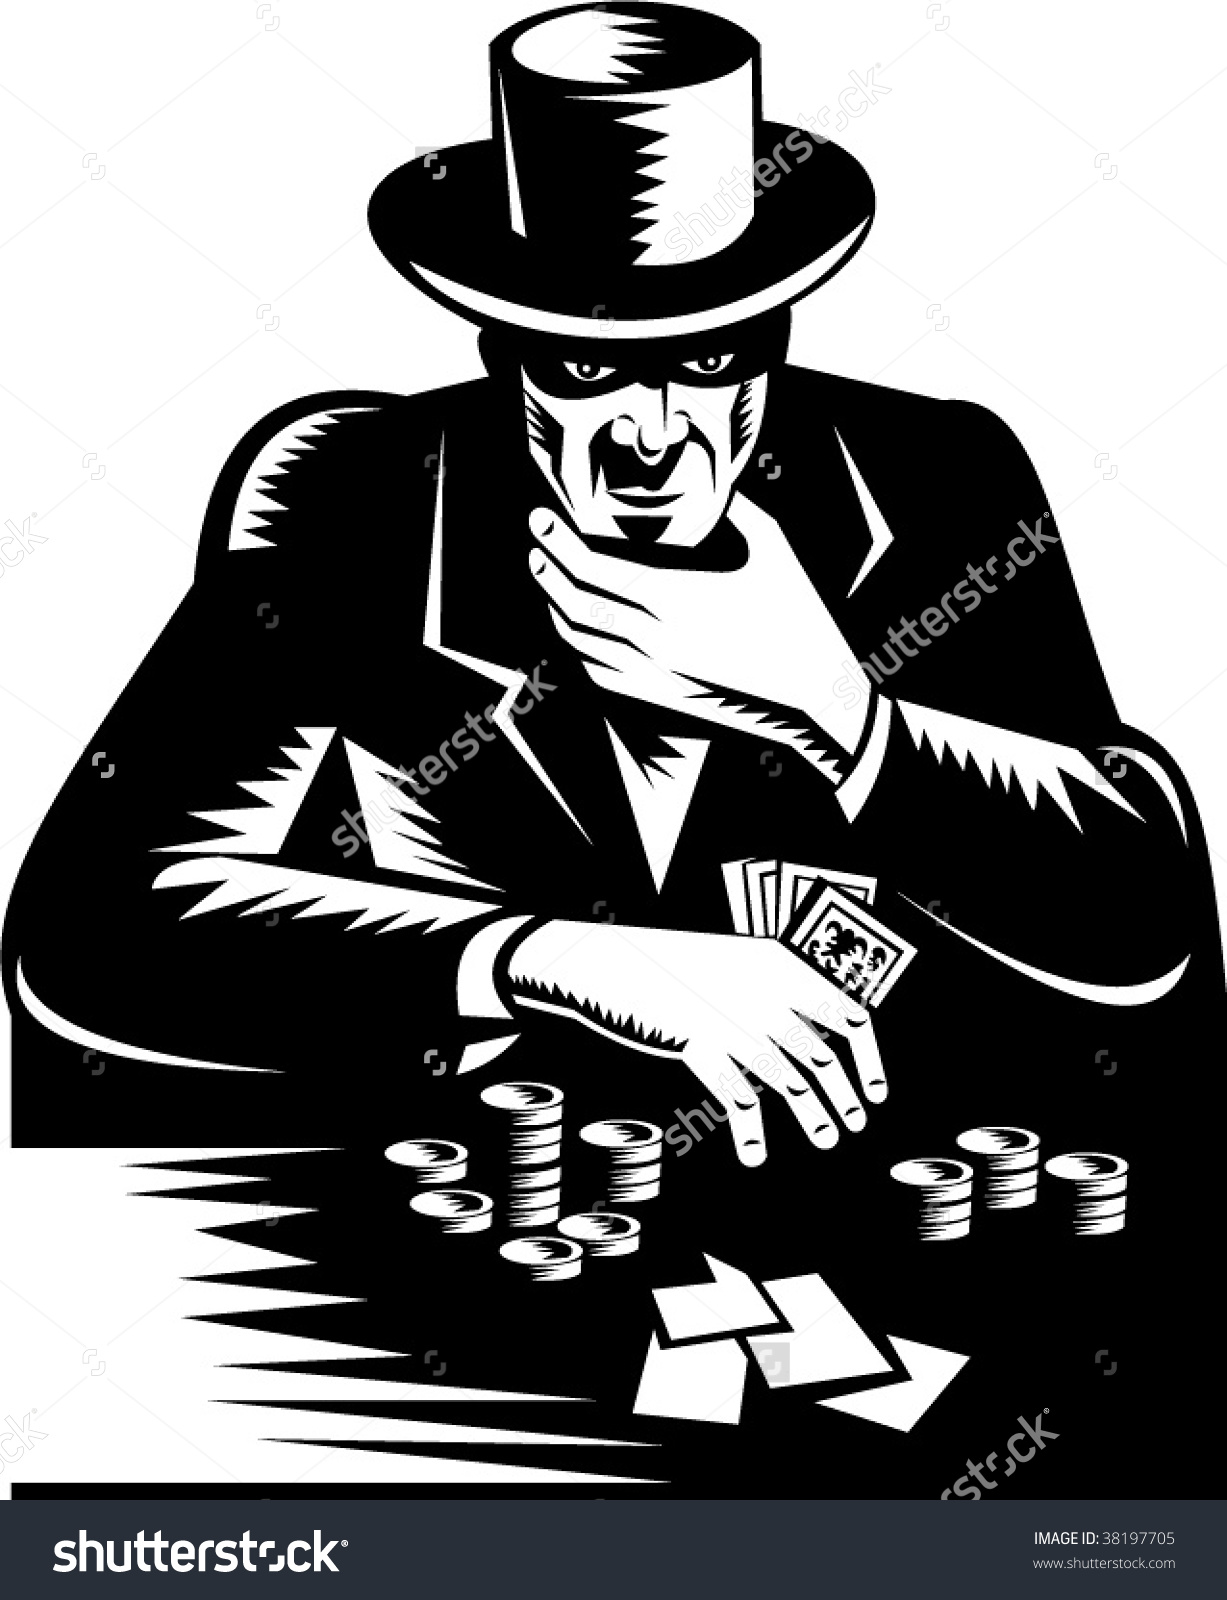 Gambler Top Hat Playing Card Game Stock Vector 38197705.